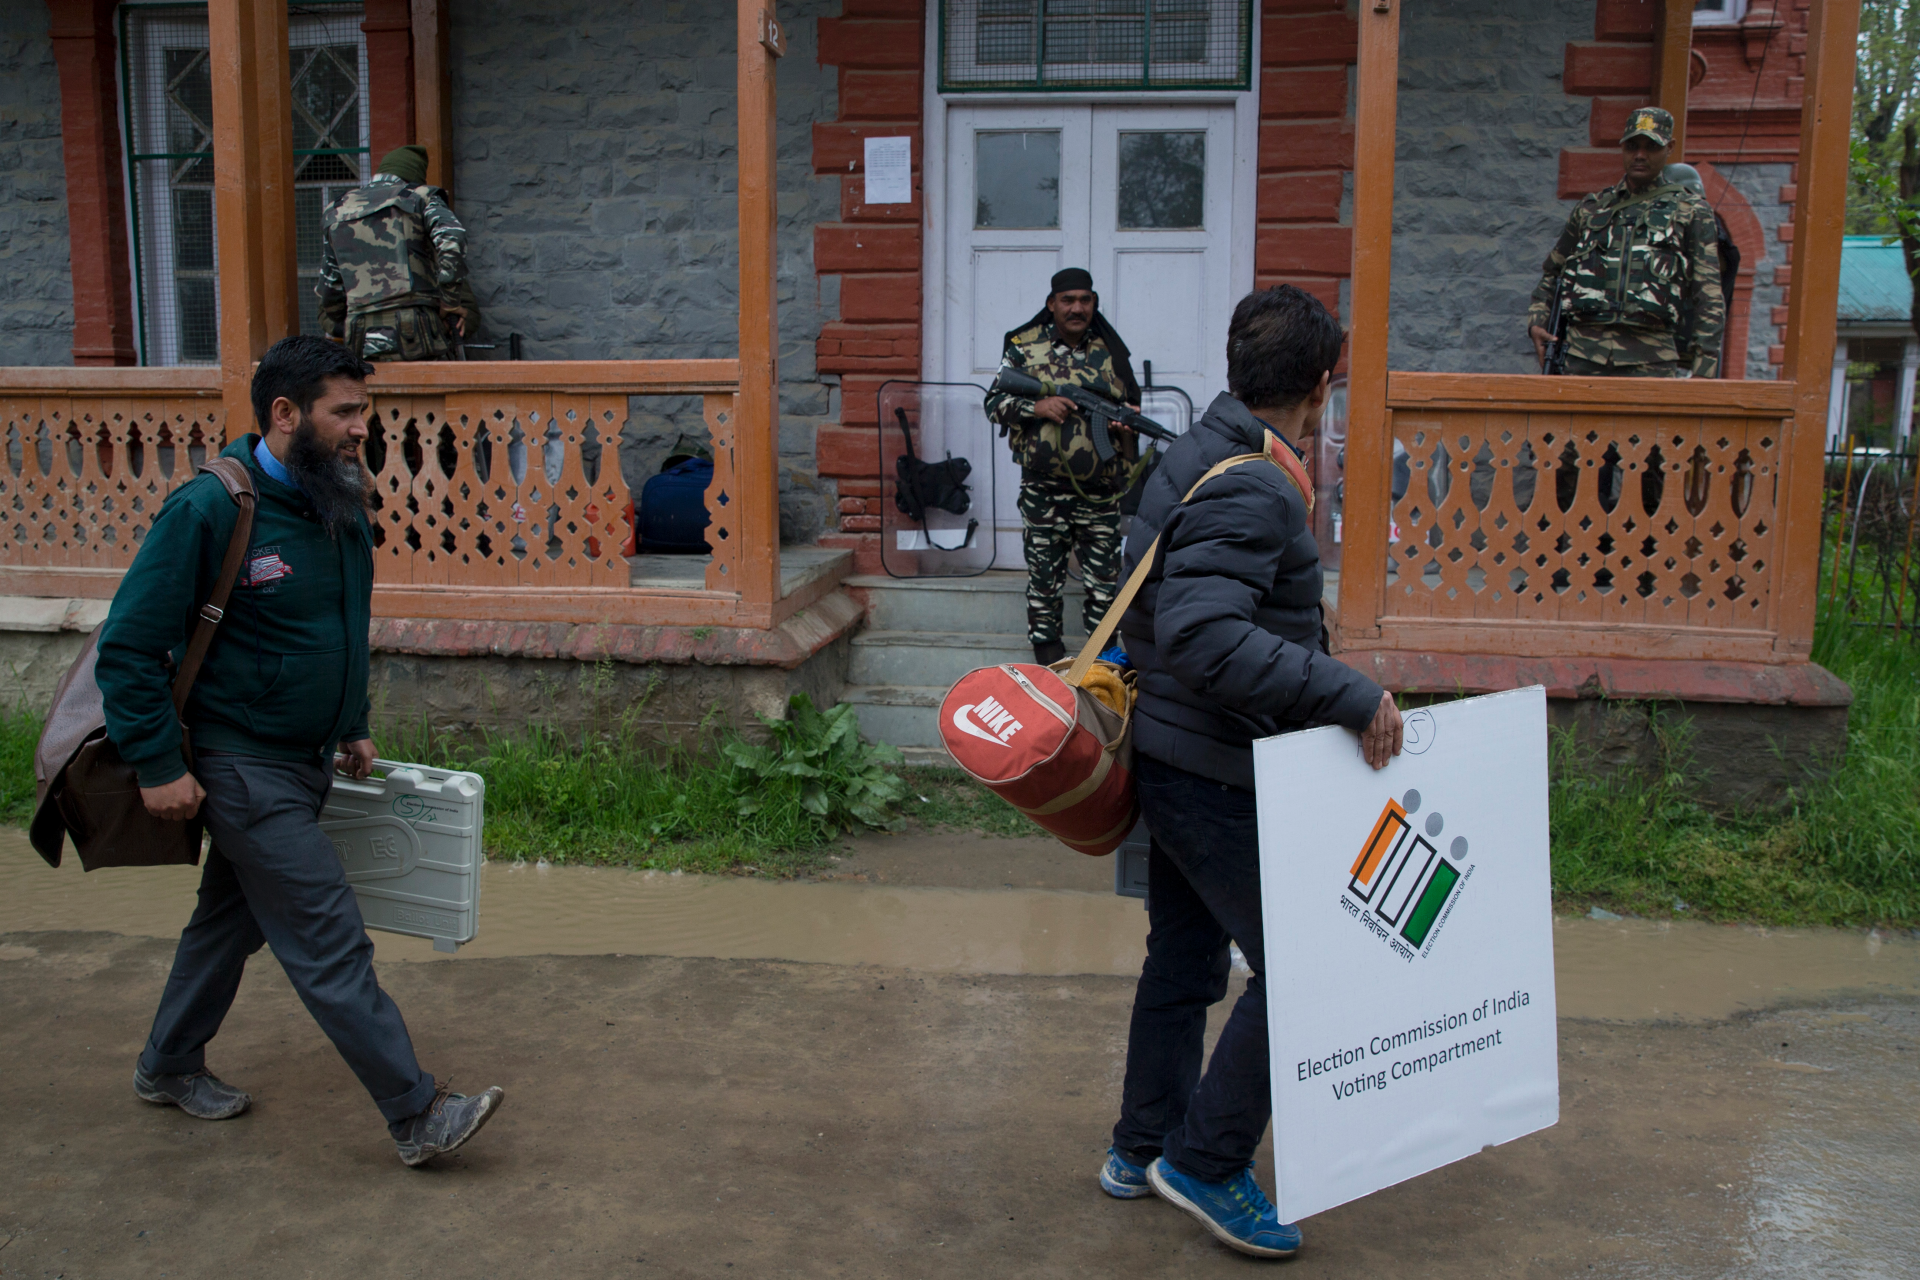 Westlake Legal Group ContentBroker_contentid-4a15b7d976d44b09b43e430fafeb0038 2nd phase of voting begins in India's general election SRINAGAR, India fox-news/world/world-regions/asia fox-news/world fnc/world fnc Associated Press article 7af43adc-263e-5283-9fa4-84e653e68074